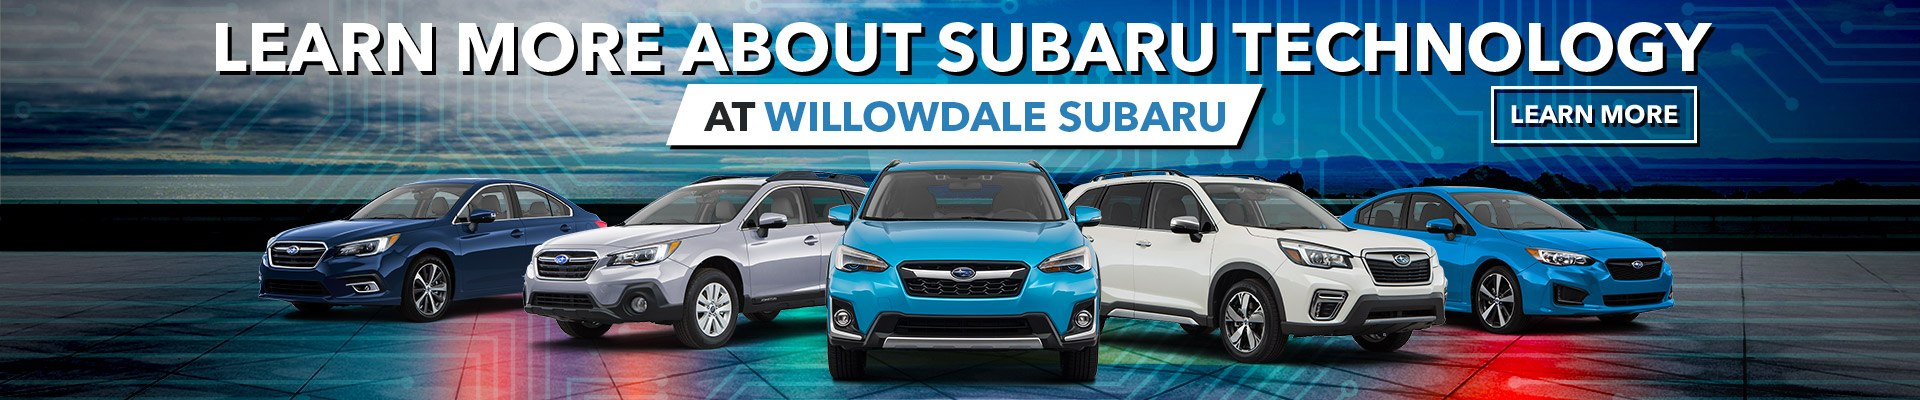 Subaru_Willowdale_Widget_1920x400_Technology